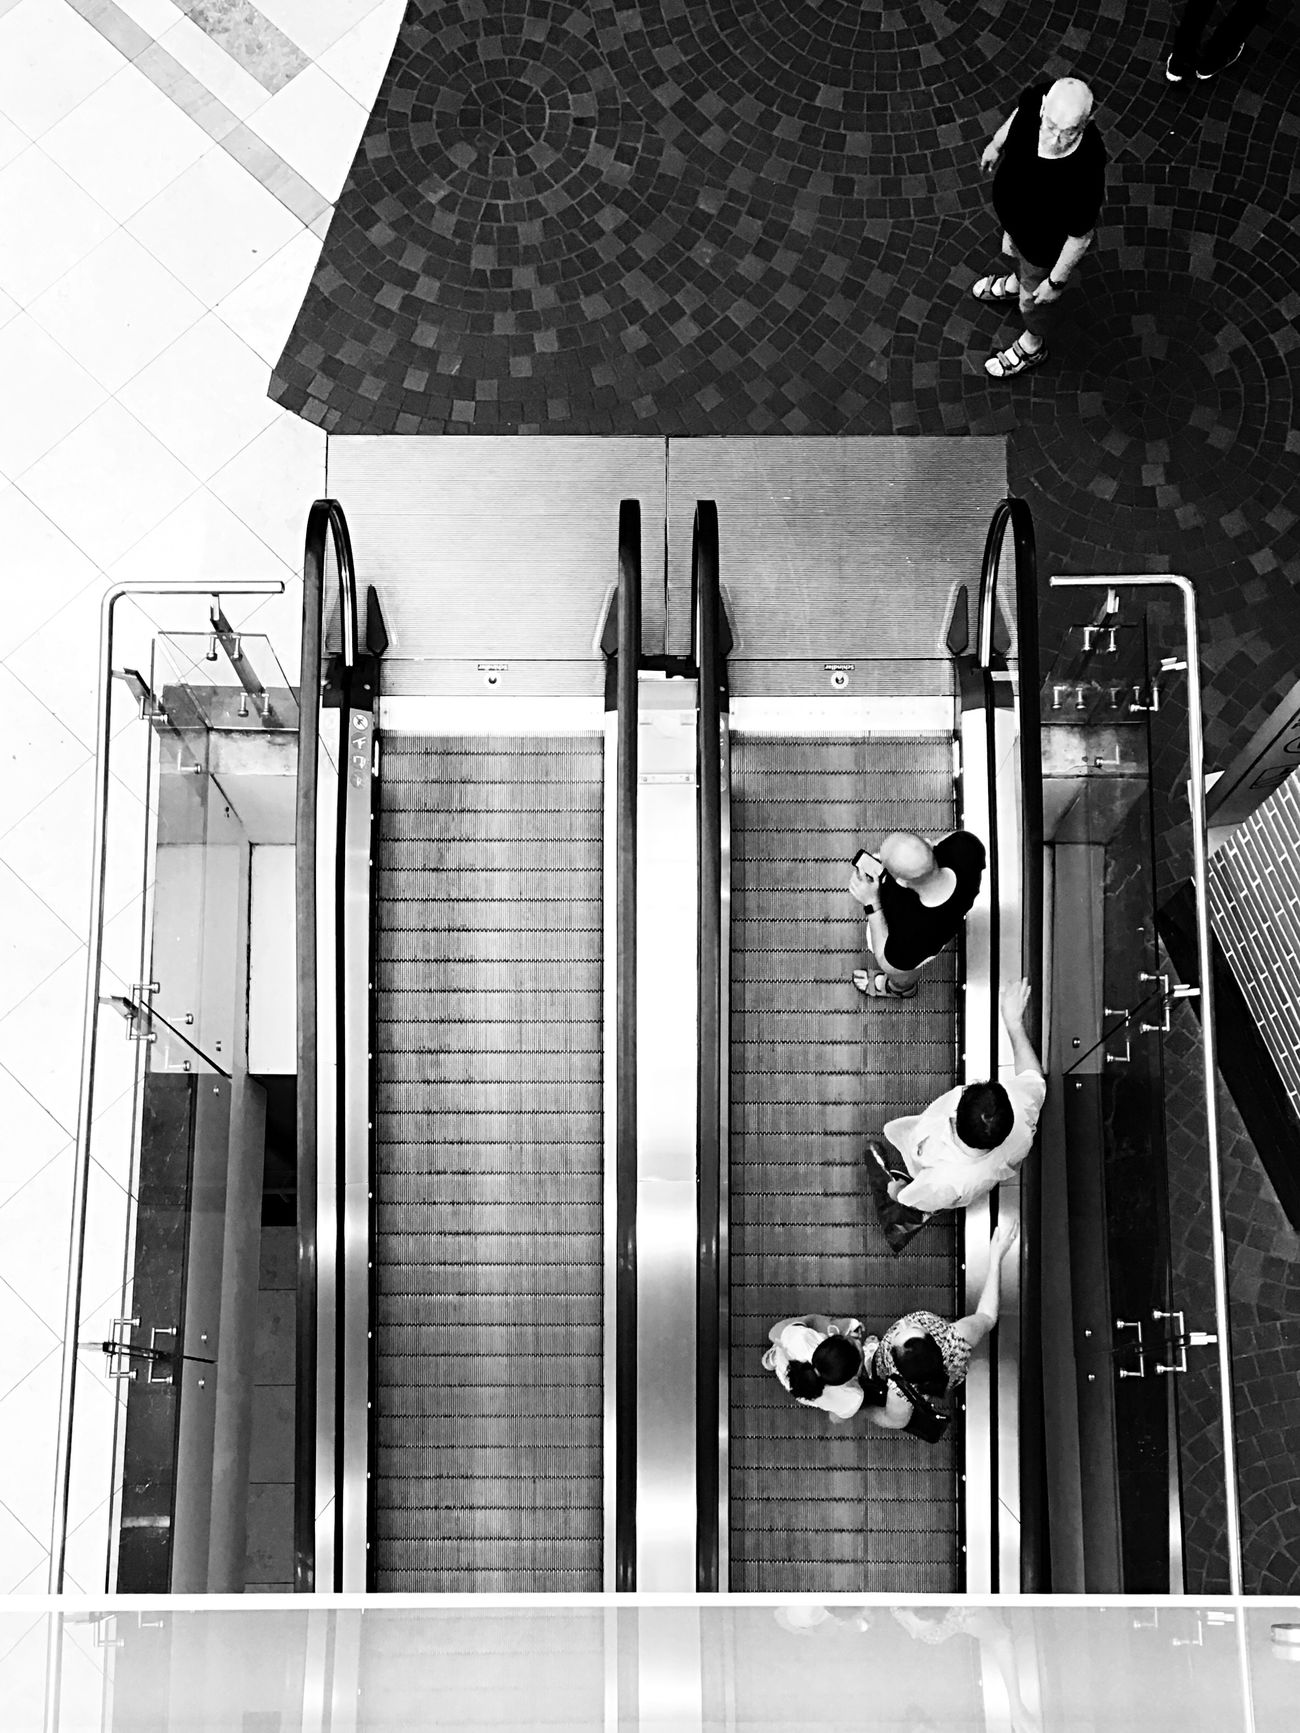 Bw series 009 Architecture Black & White Monochrome Black And White IPhoneography VSCO Photography AMPt - Street Shootermag Vscocam Blackandwhite